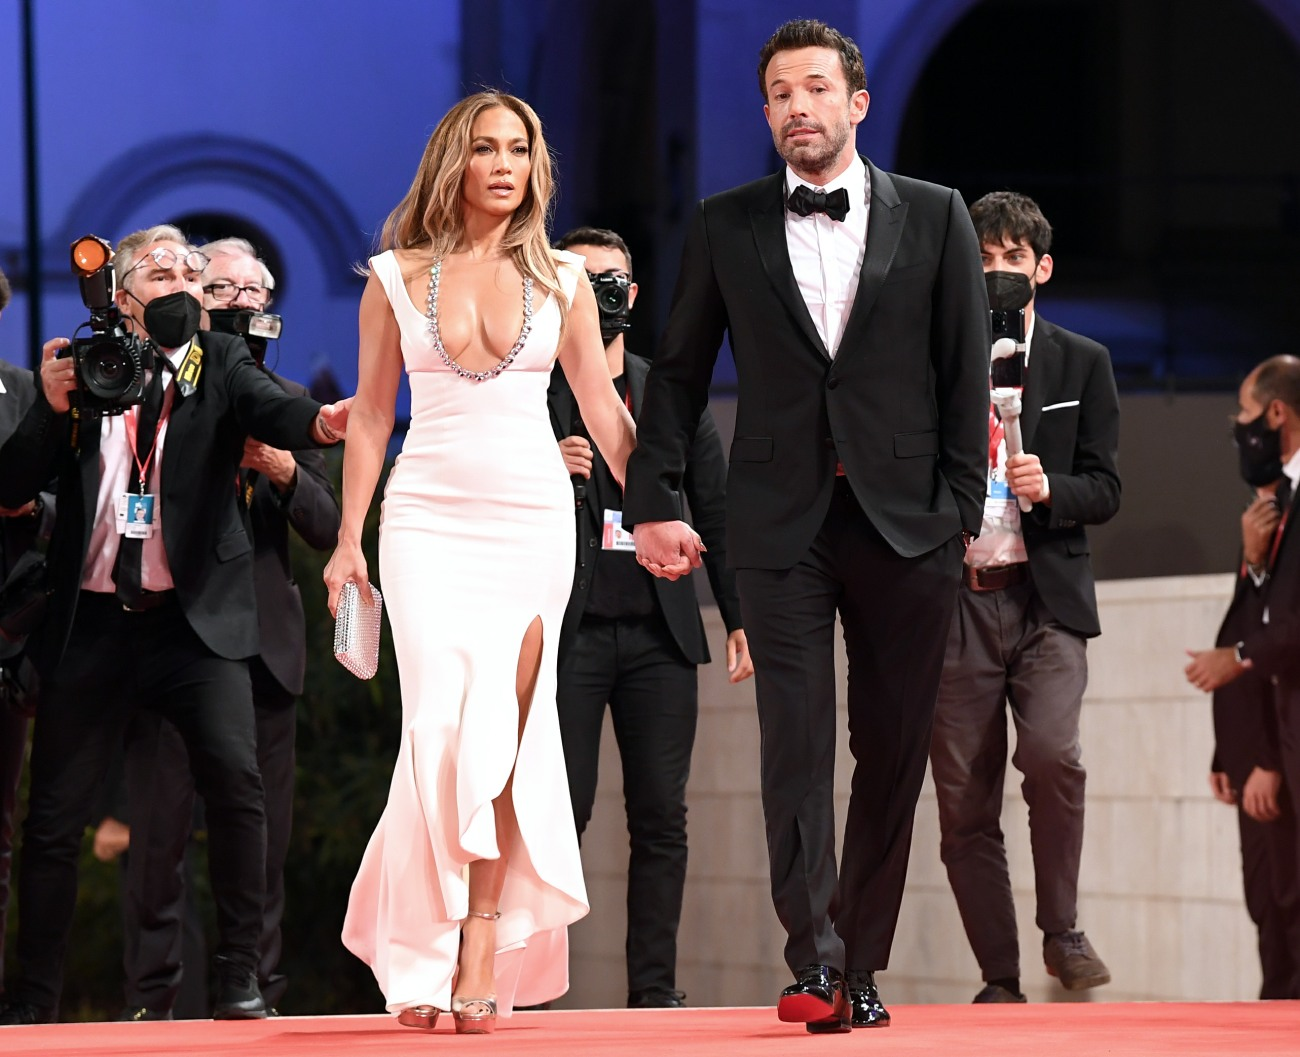 'The Last Duel' red carpet, the 78th annual Venice International Film Festival, in Venice, Italy, 10 September 2021.